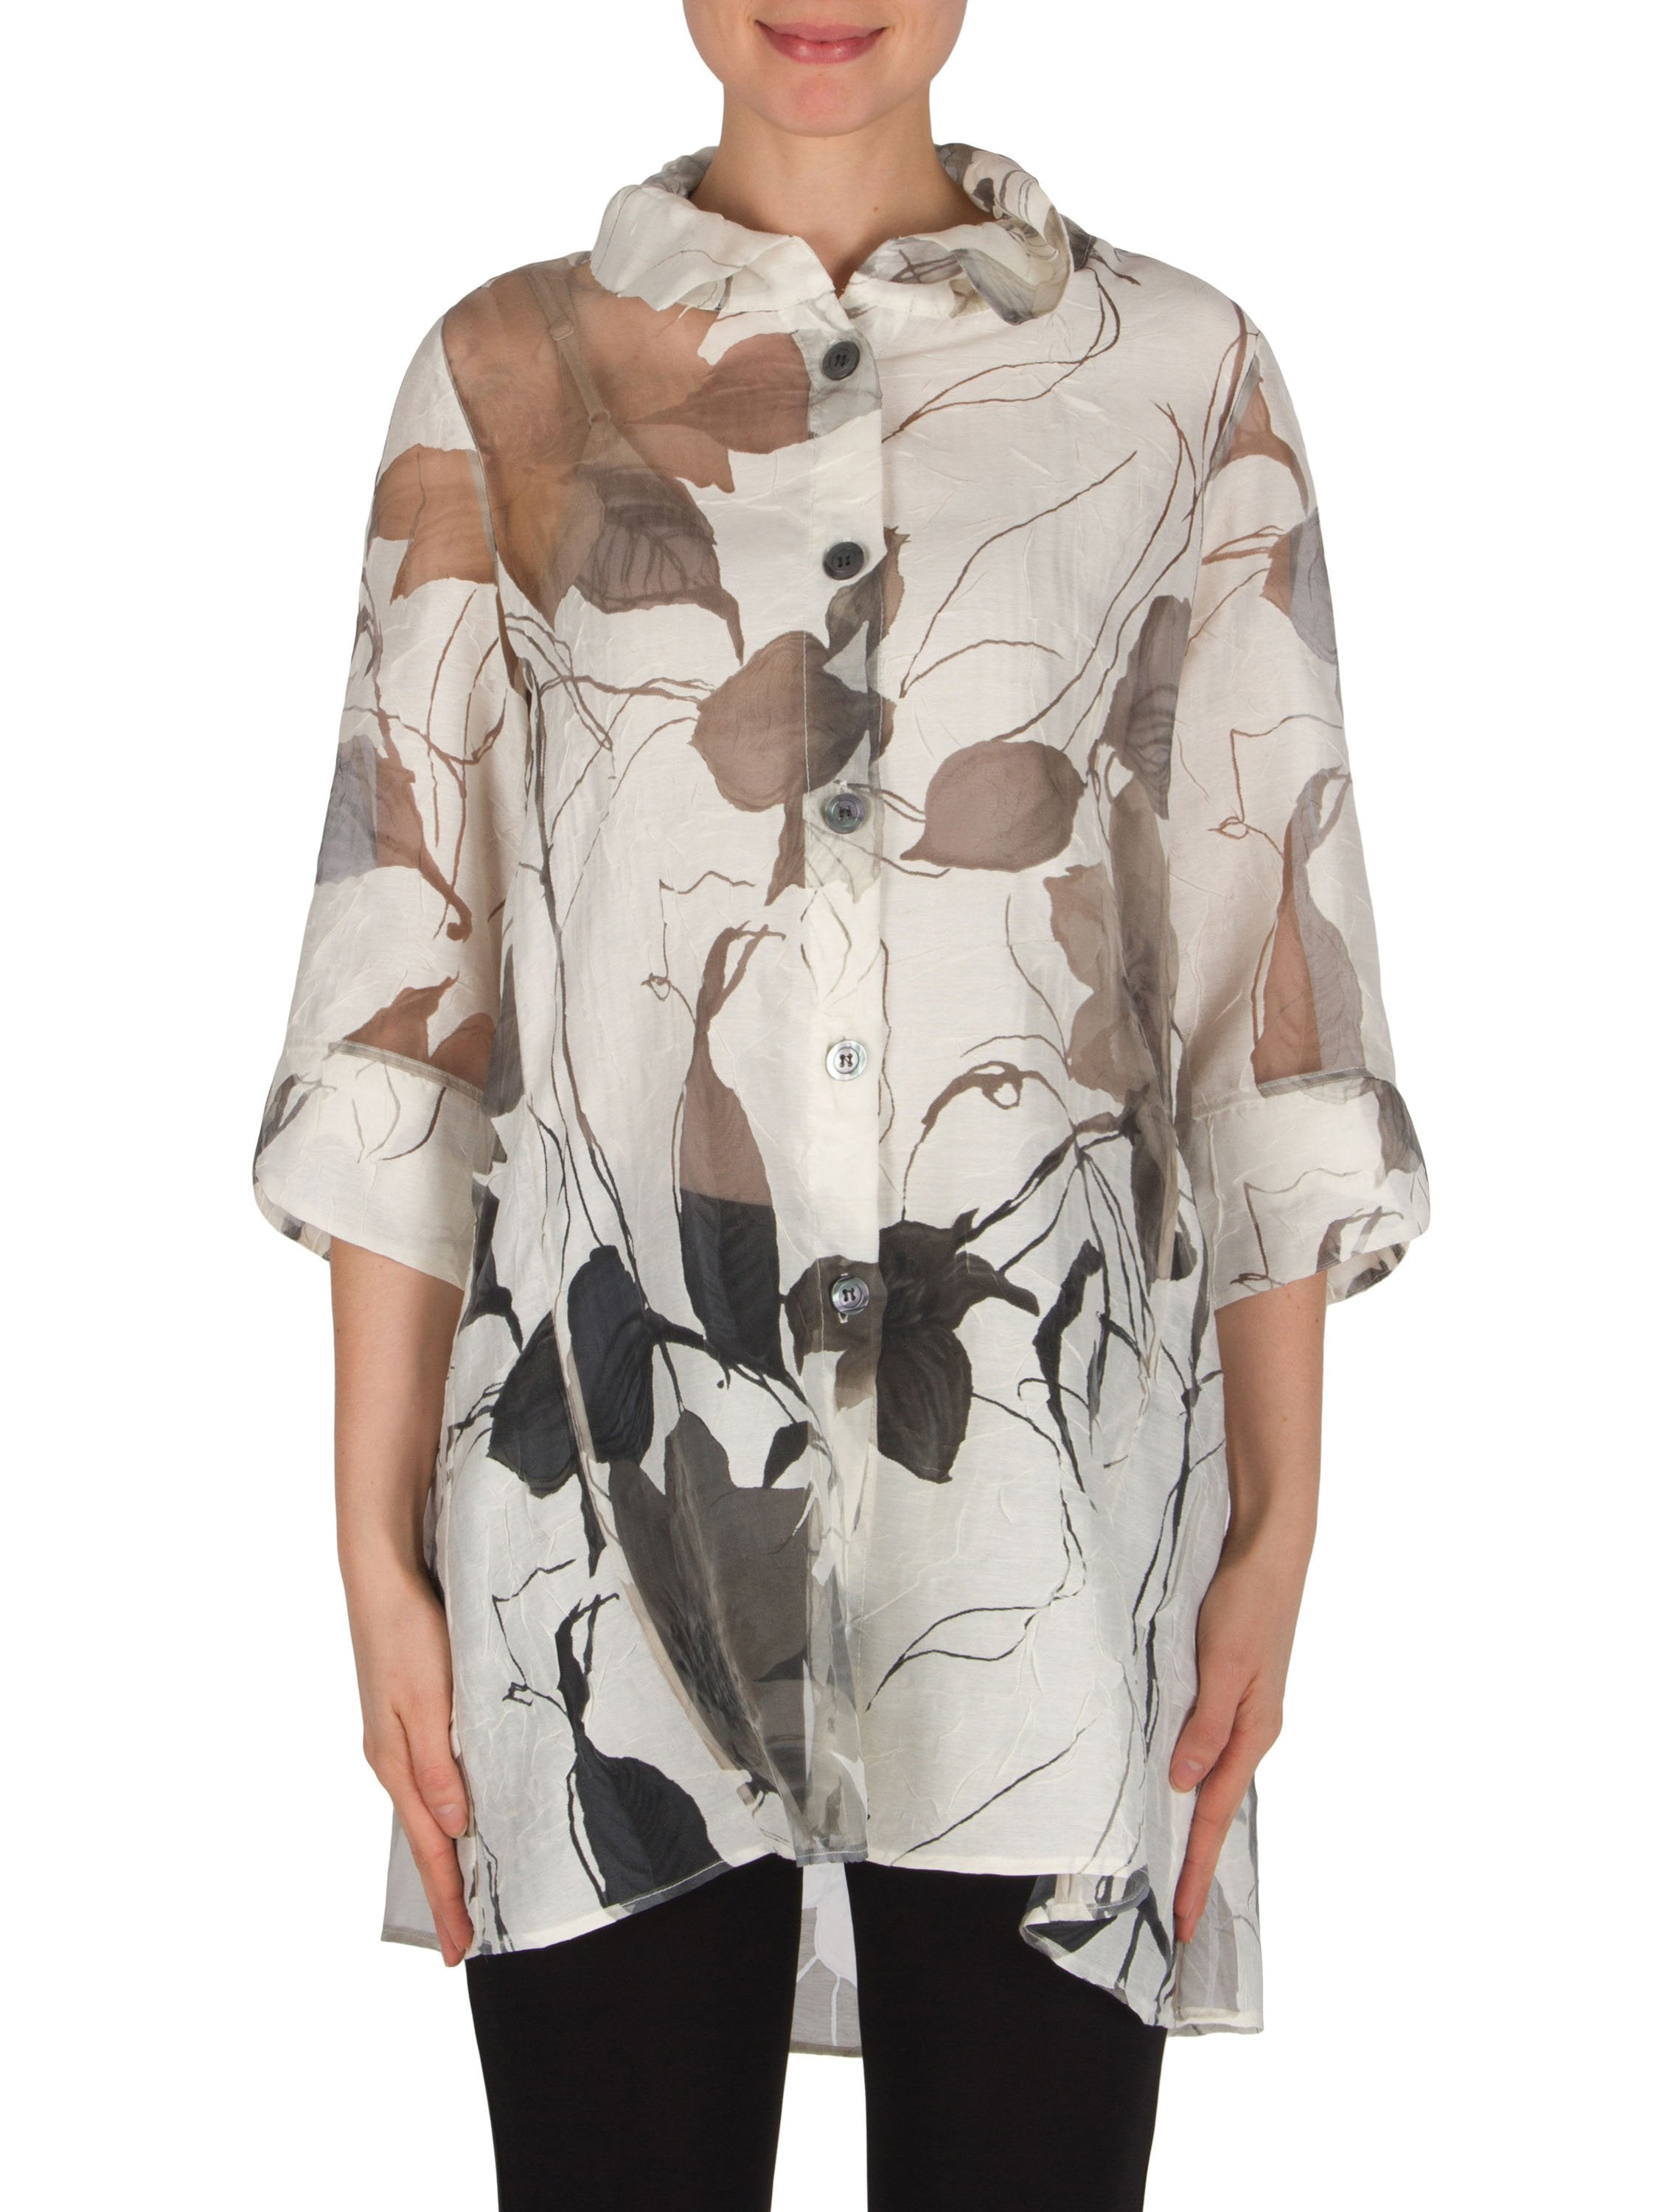 Joseph Ribkoff White/Black Leaf Design Burnout Overblouse